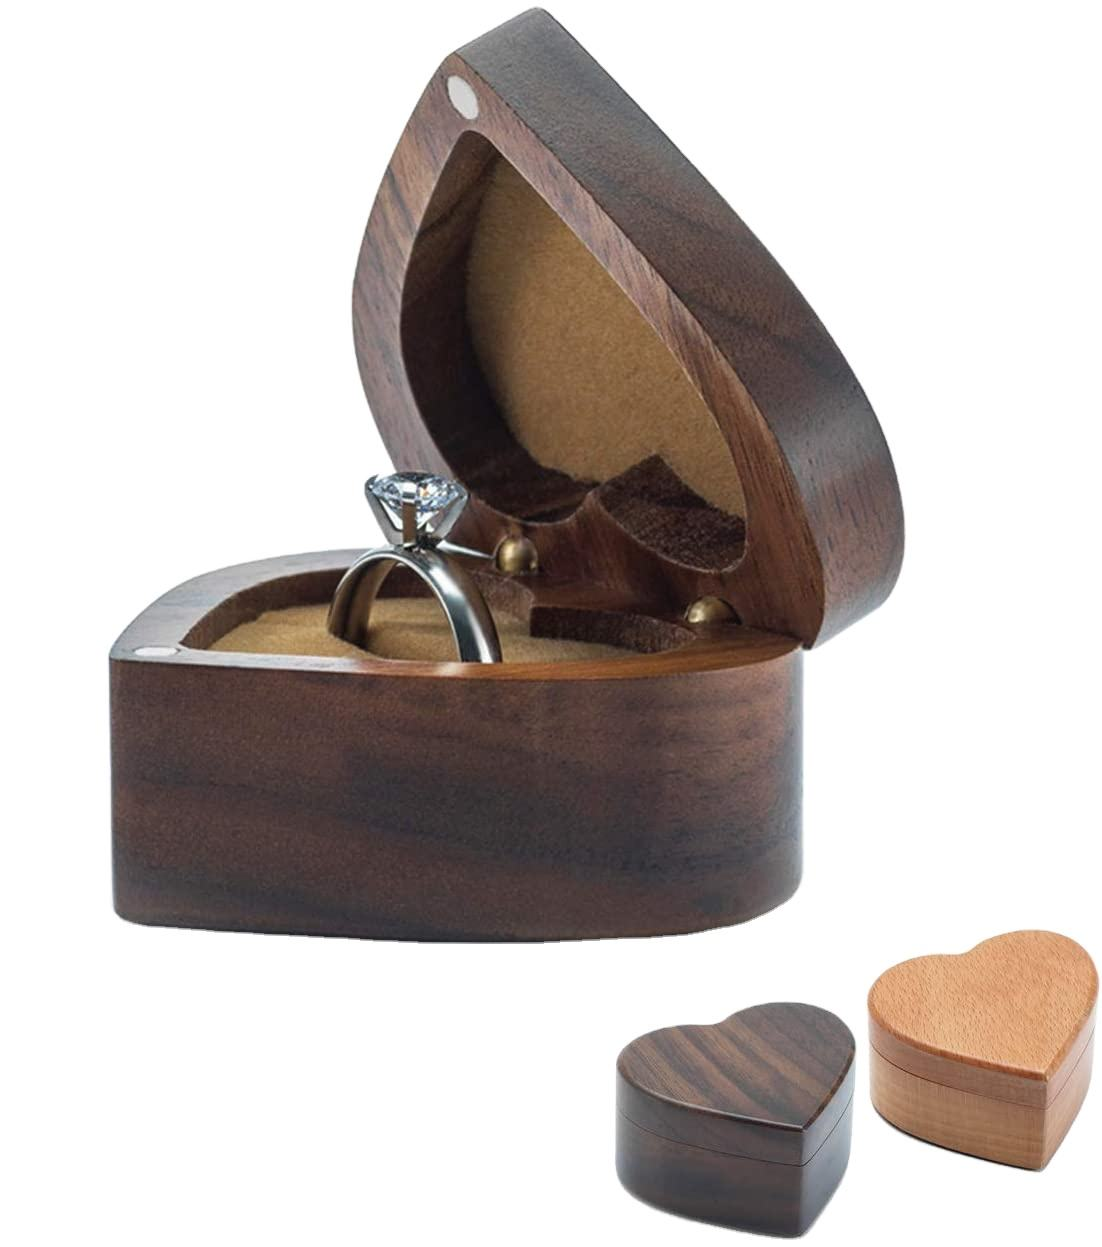 Shaped Walnut Wood Ring Box Velvet Soft Interior Holder Jewelry Chest Organizer Earrings Coin Jewelry Wooden Presentation Box Ca